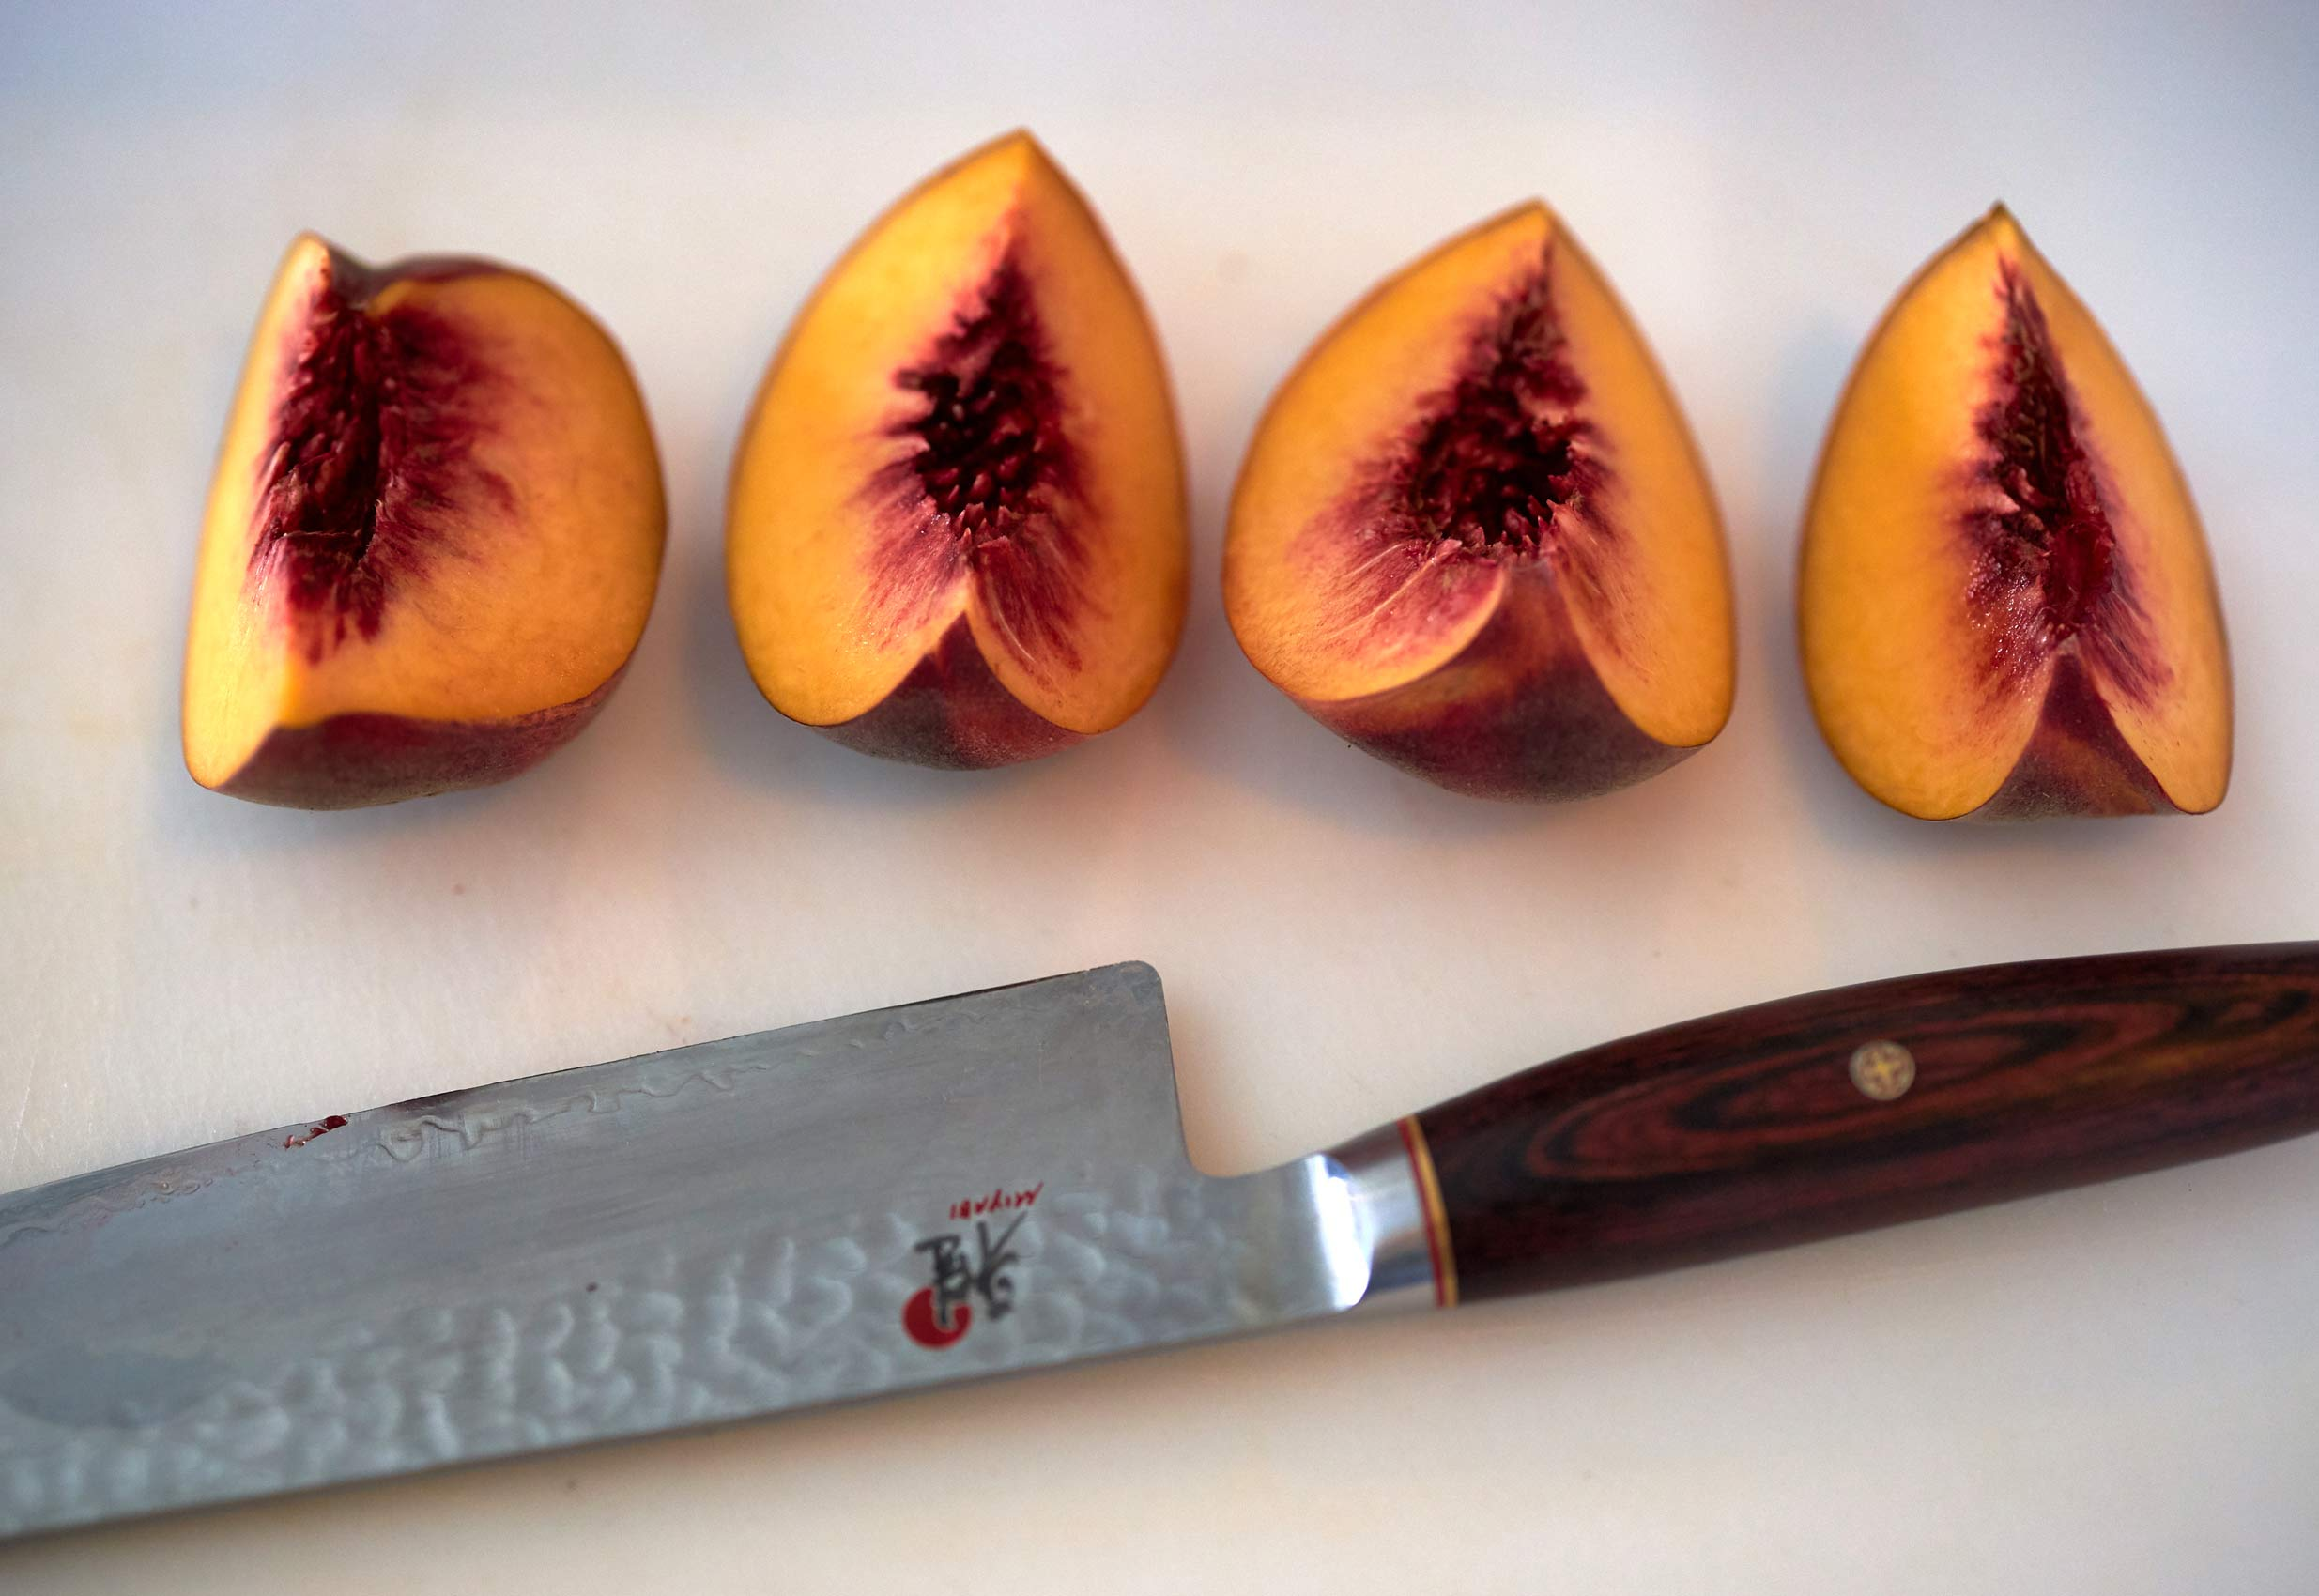 Sliced Peaches and Knife